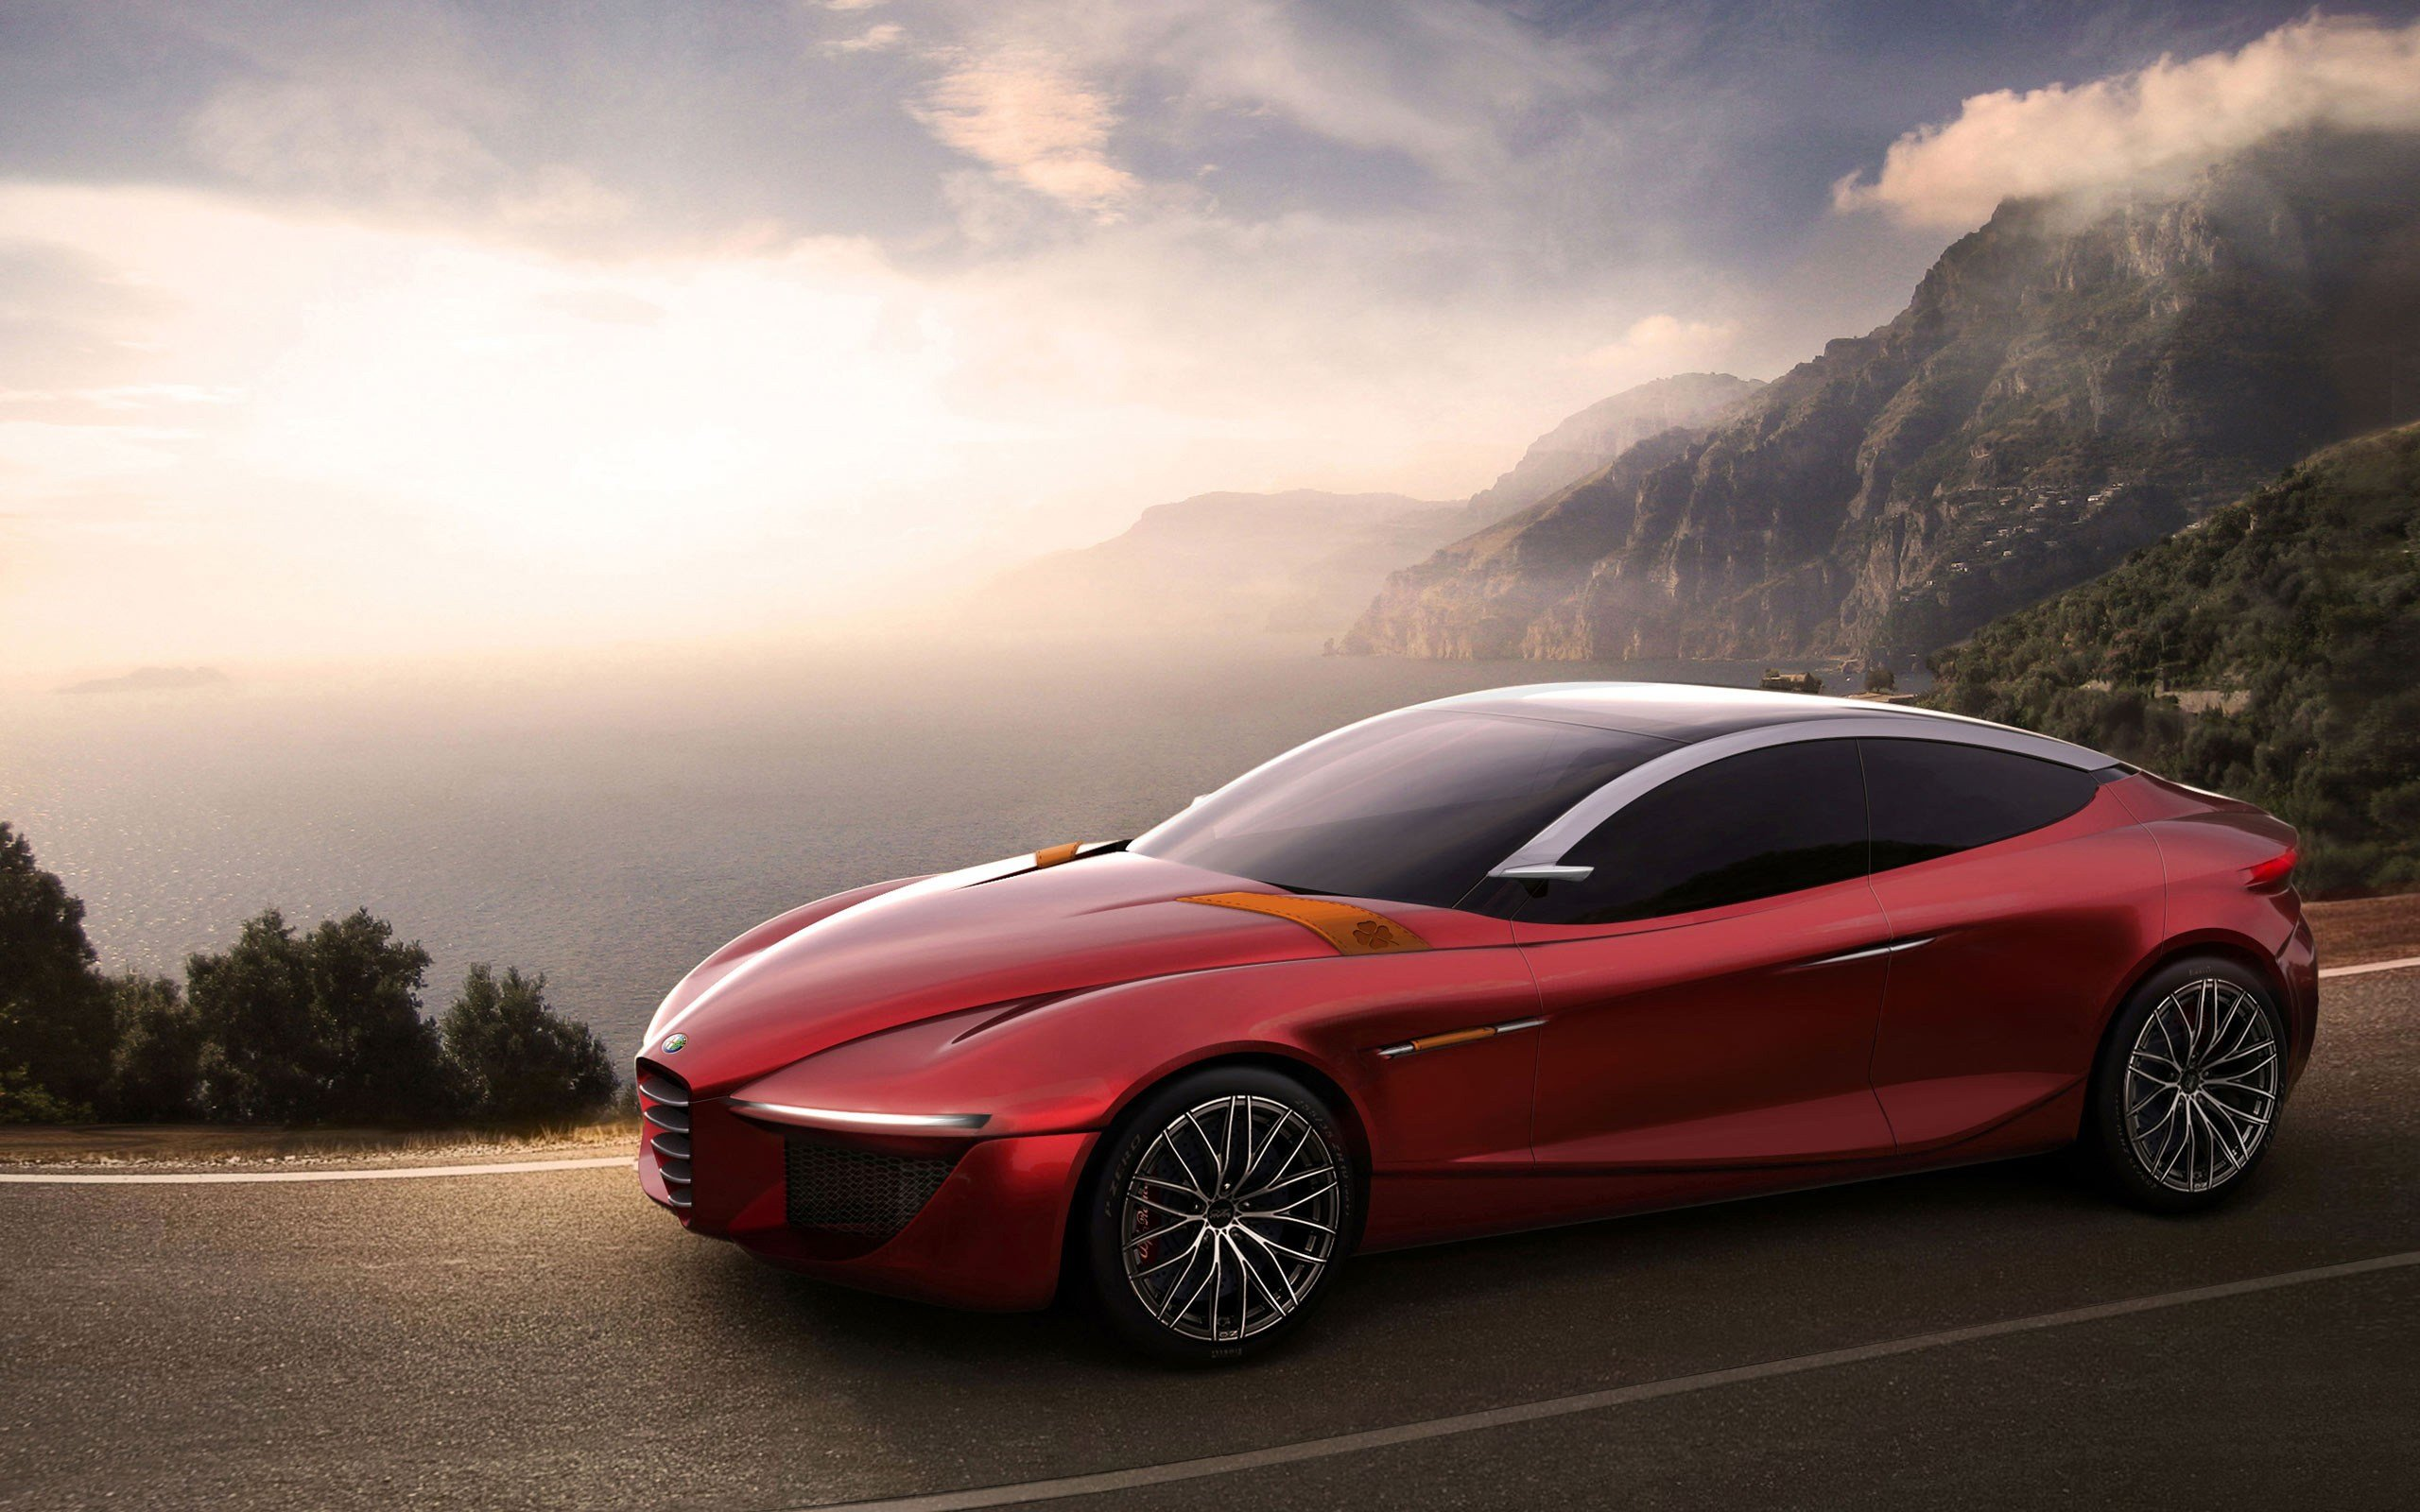 Latest 2013 Alfa Romeo Gloria Concept Wallpaper Hd Car Free Download